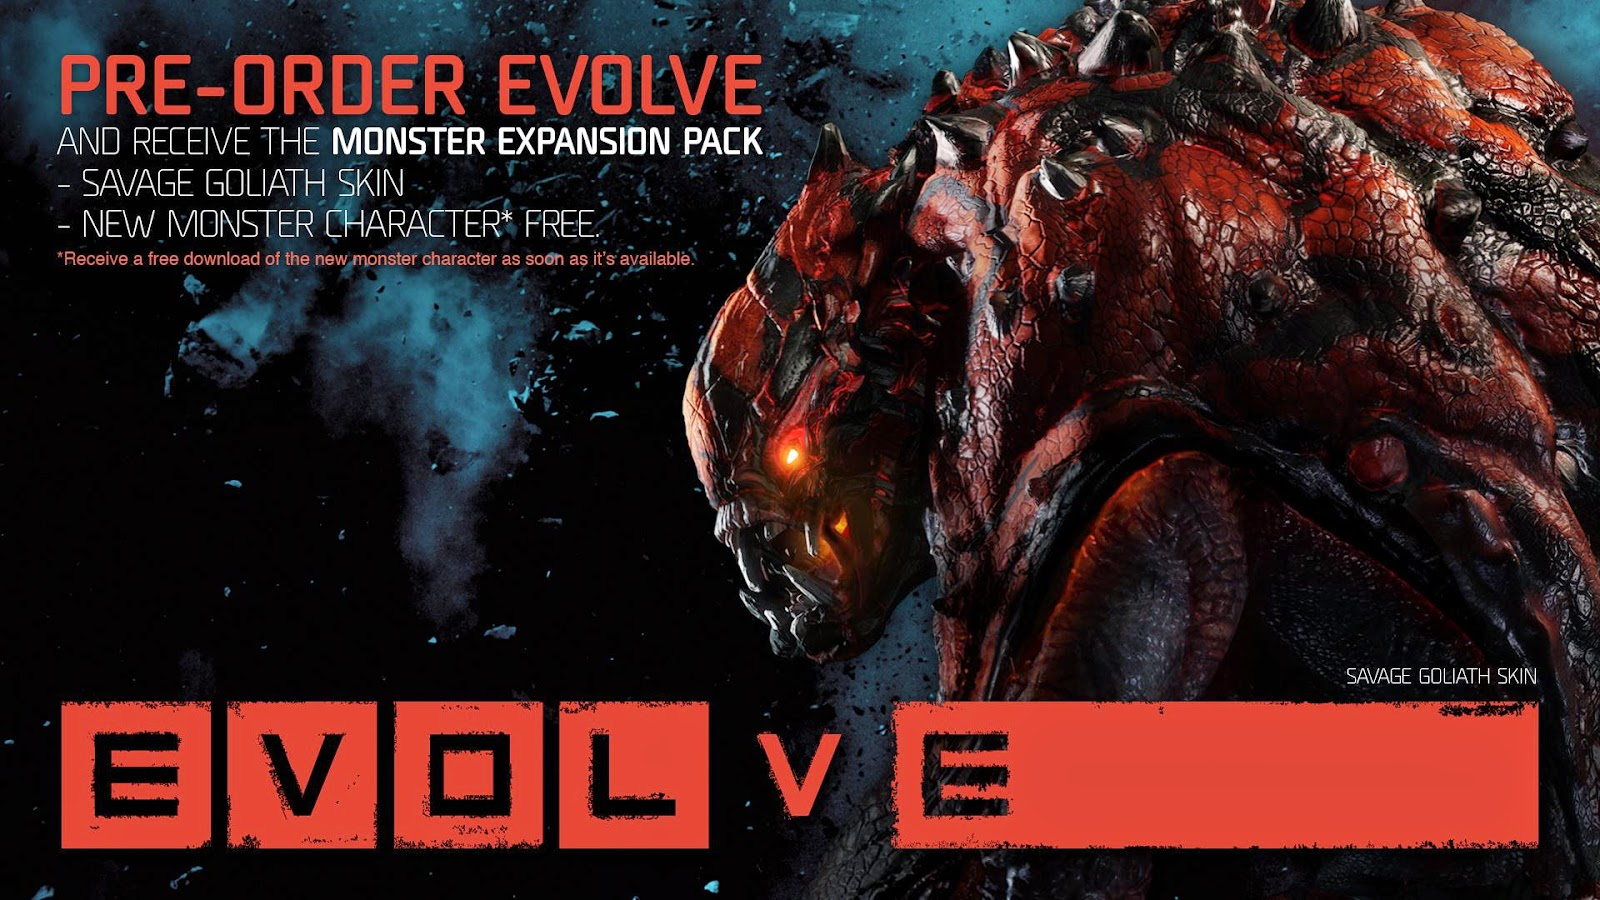 Evolve-New-Interactive-4v1-Multiplayer-Action-Revealed-PS4-Games